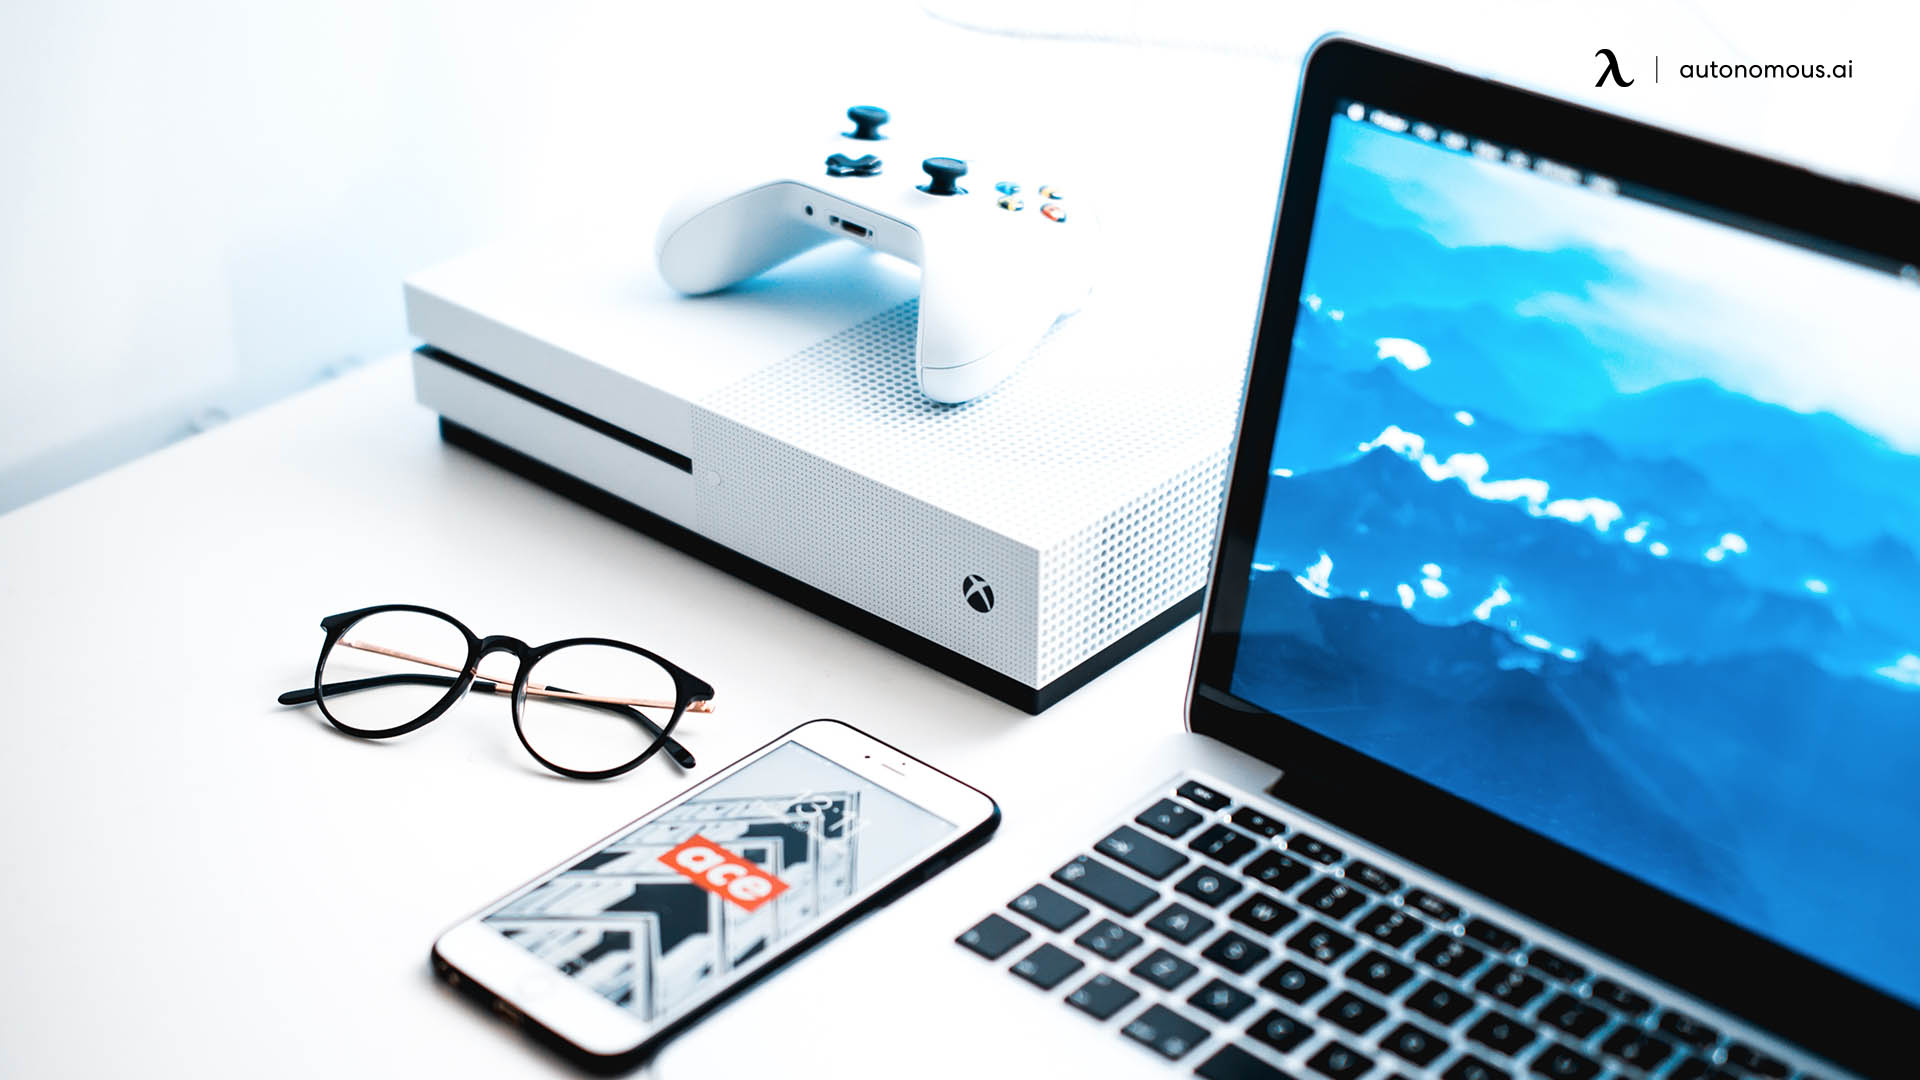 Why Should You Go Minimalistic with Your Gaming Setup?